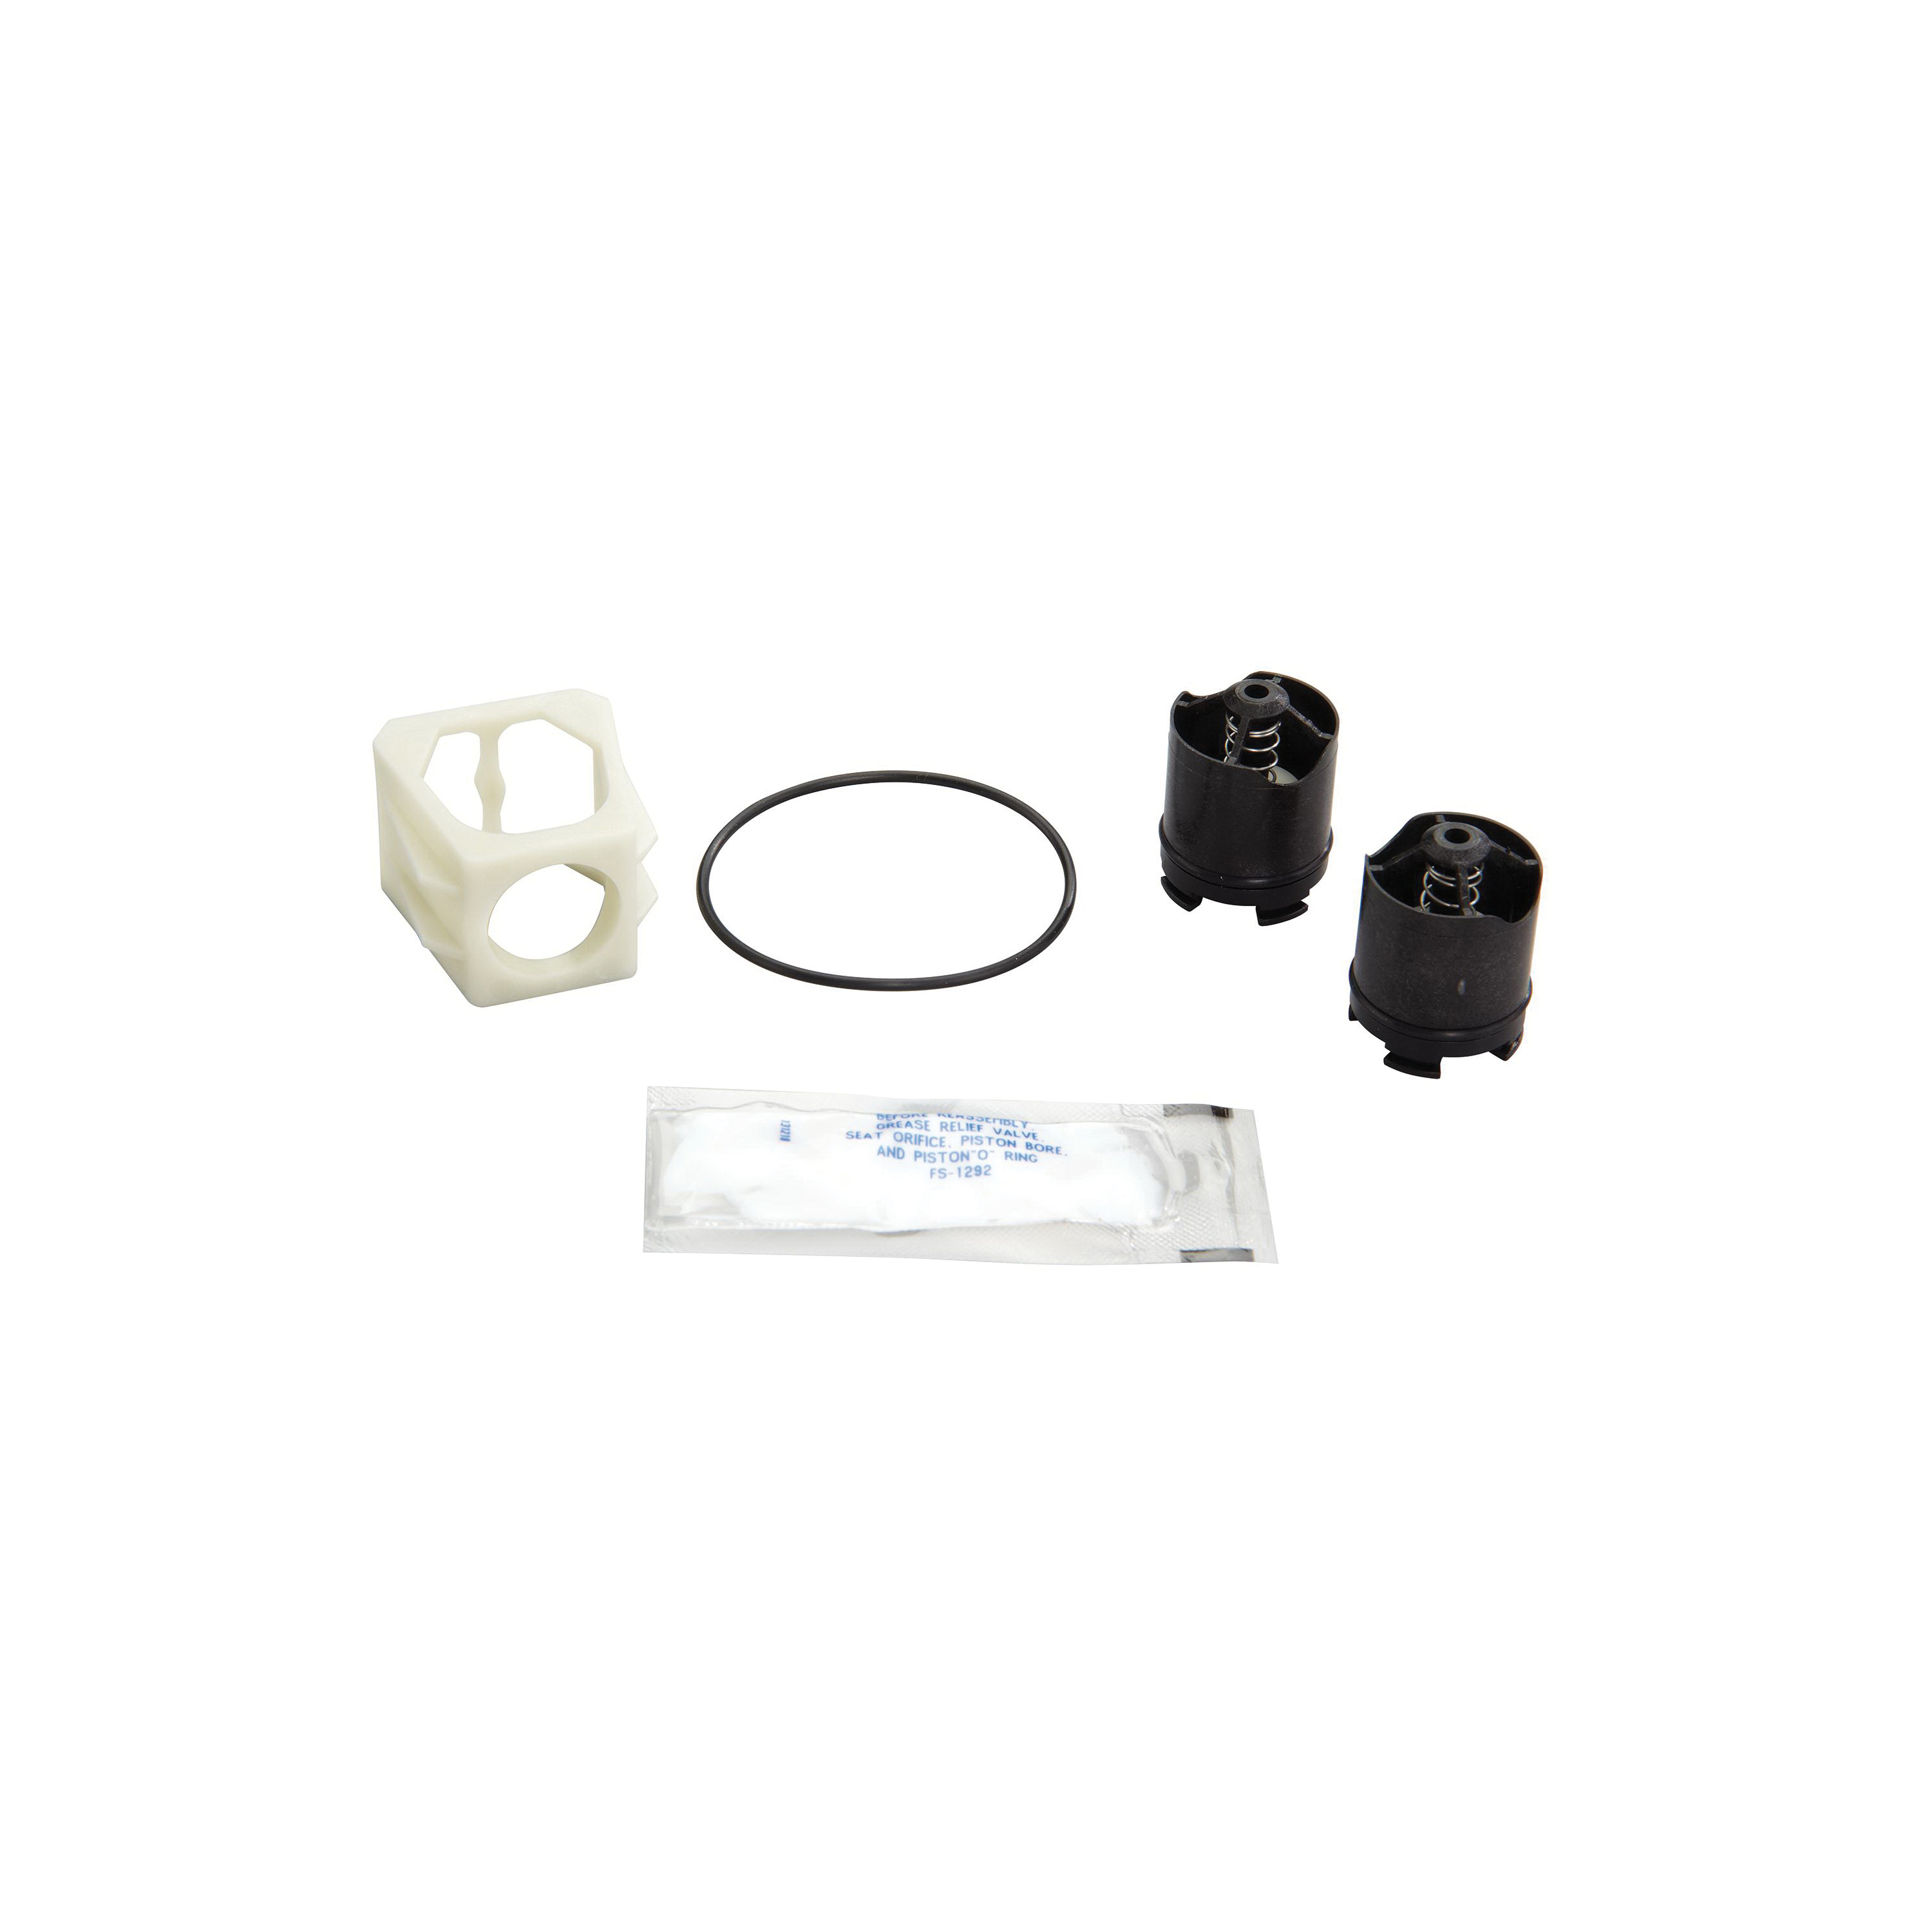 WATTS® 0887033 Total Valve Repair Kit, For Use With 1/2 in Dual Check Valve